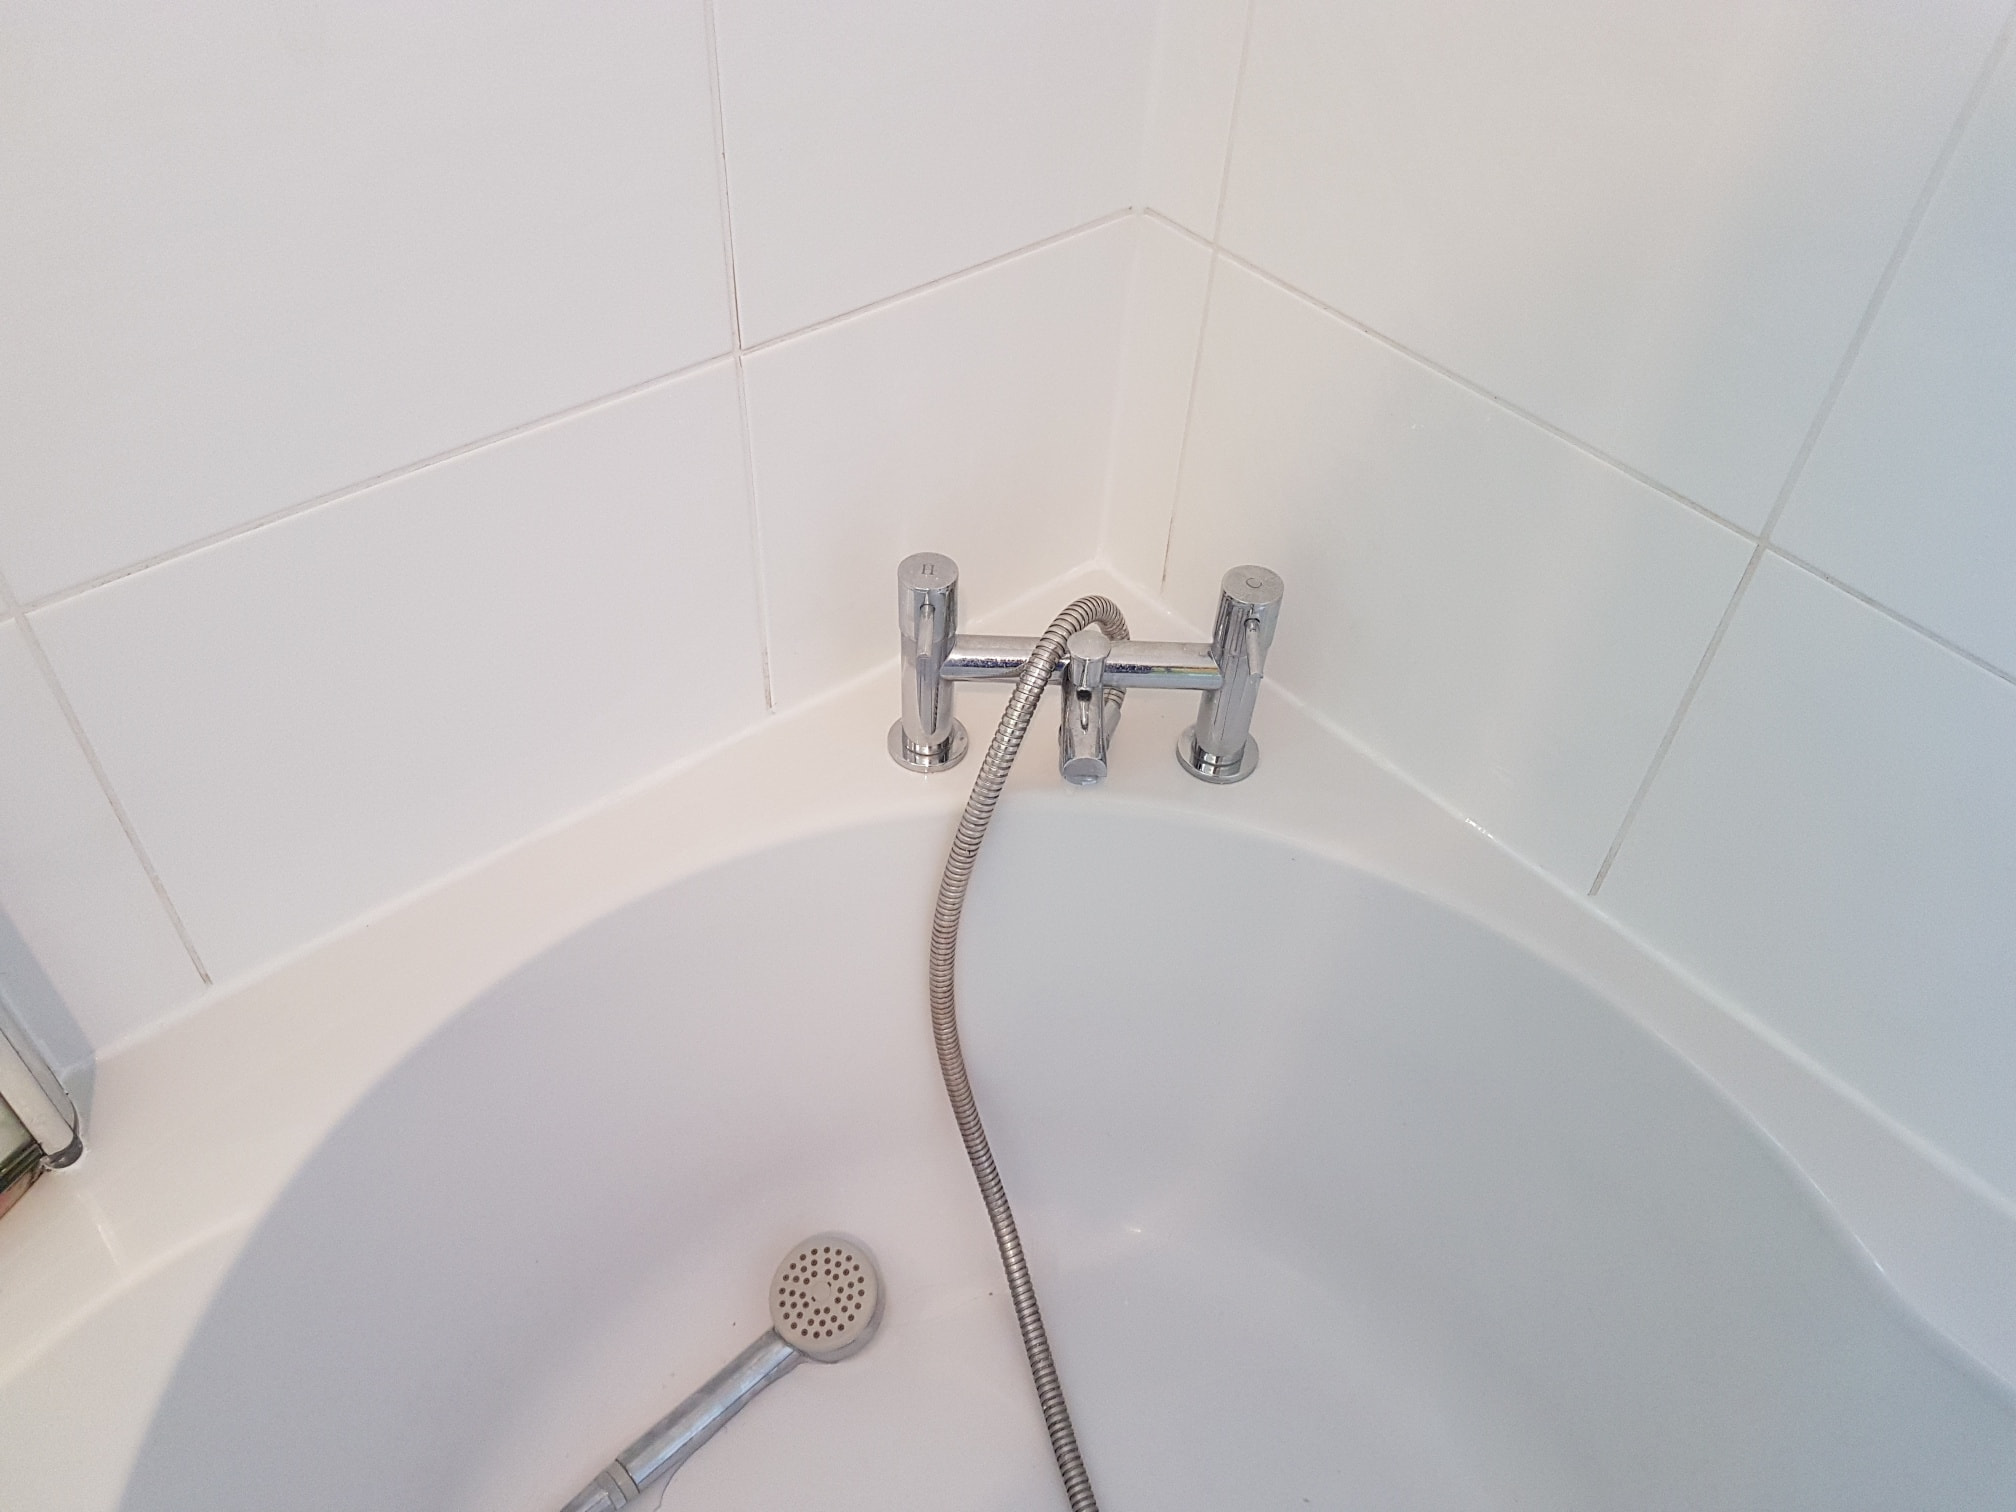 Renovating White Ceramic Tiled Bathroom Harrogate After